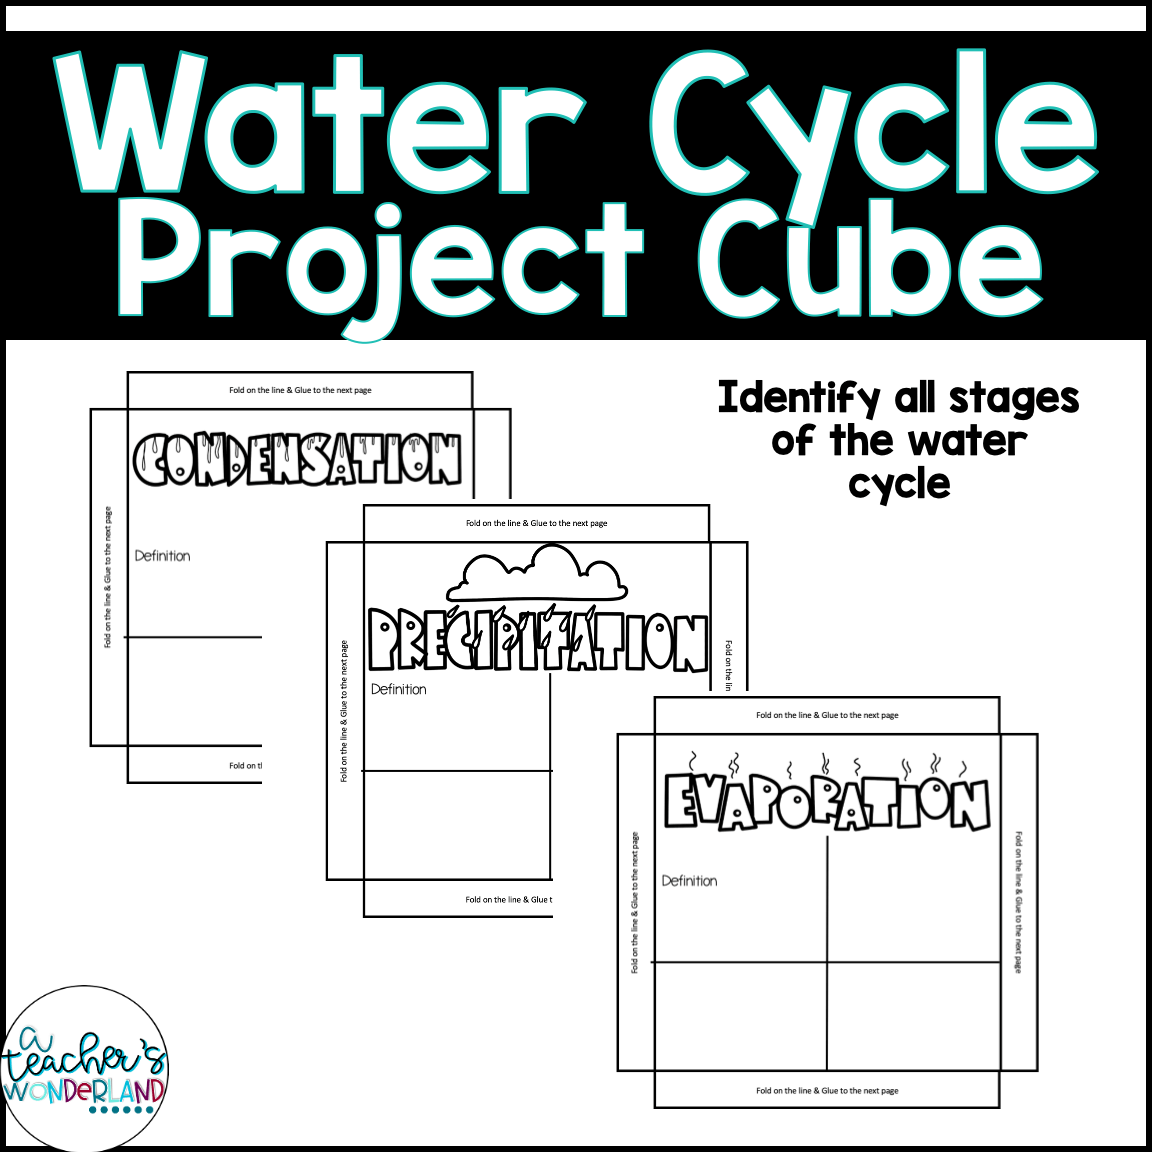 Water Cycle 3d Project Cube Science Craftivity A Teacher S Wonderland